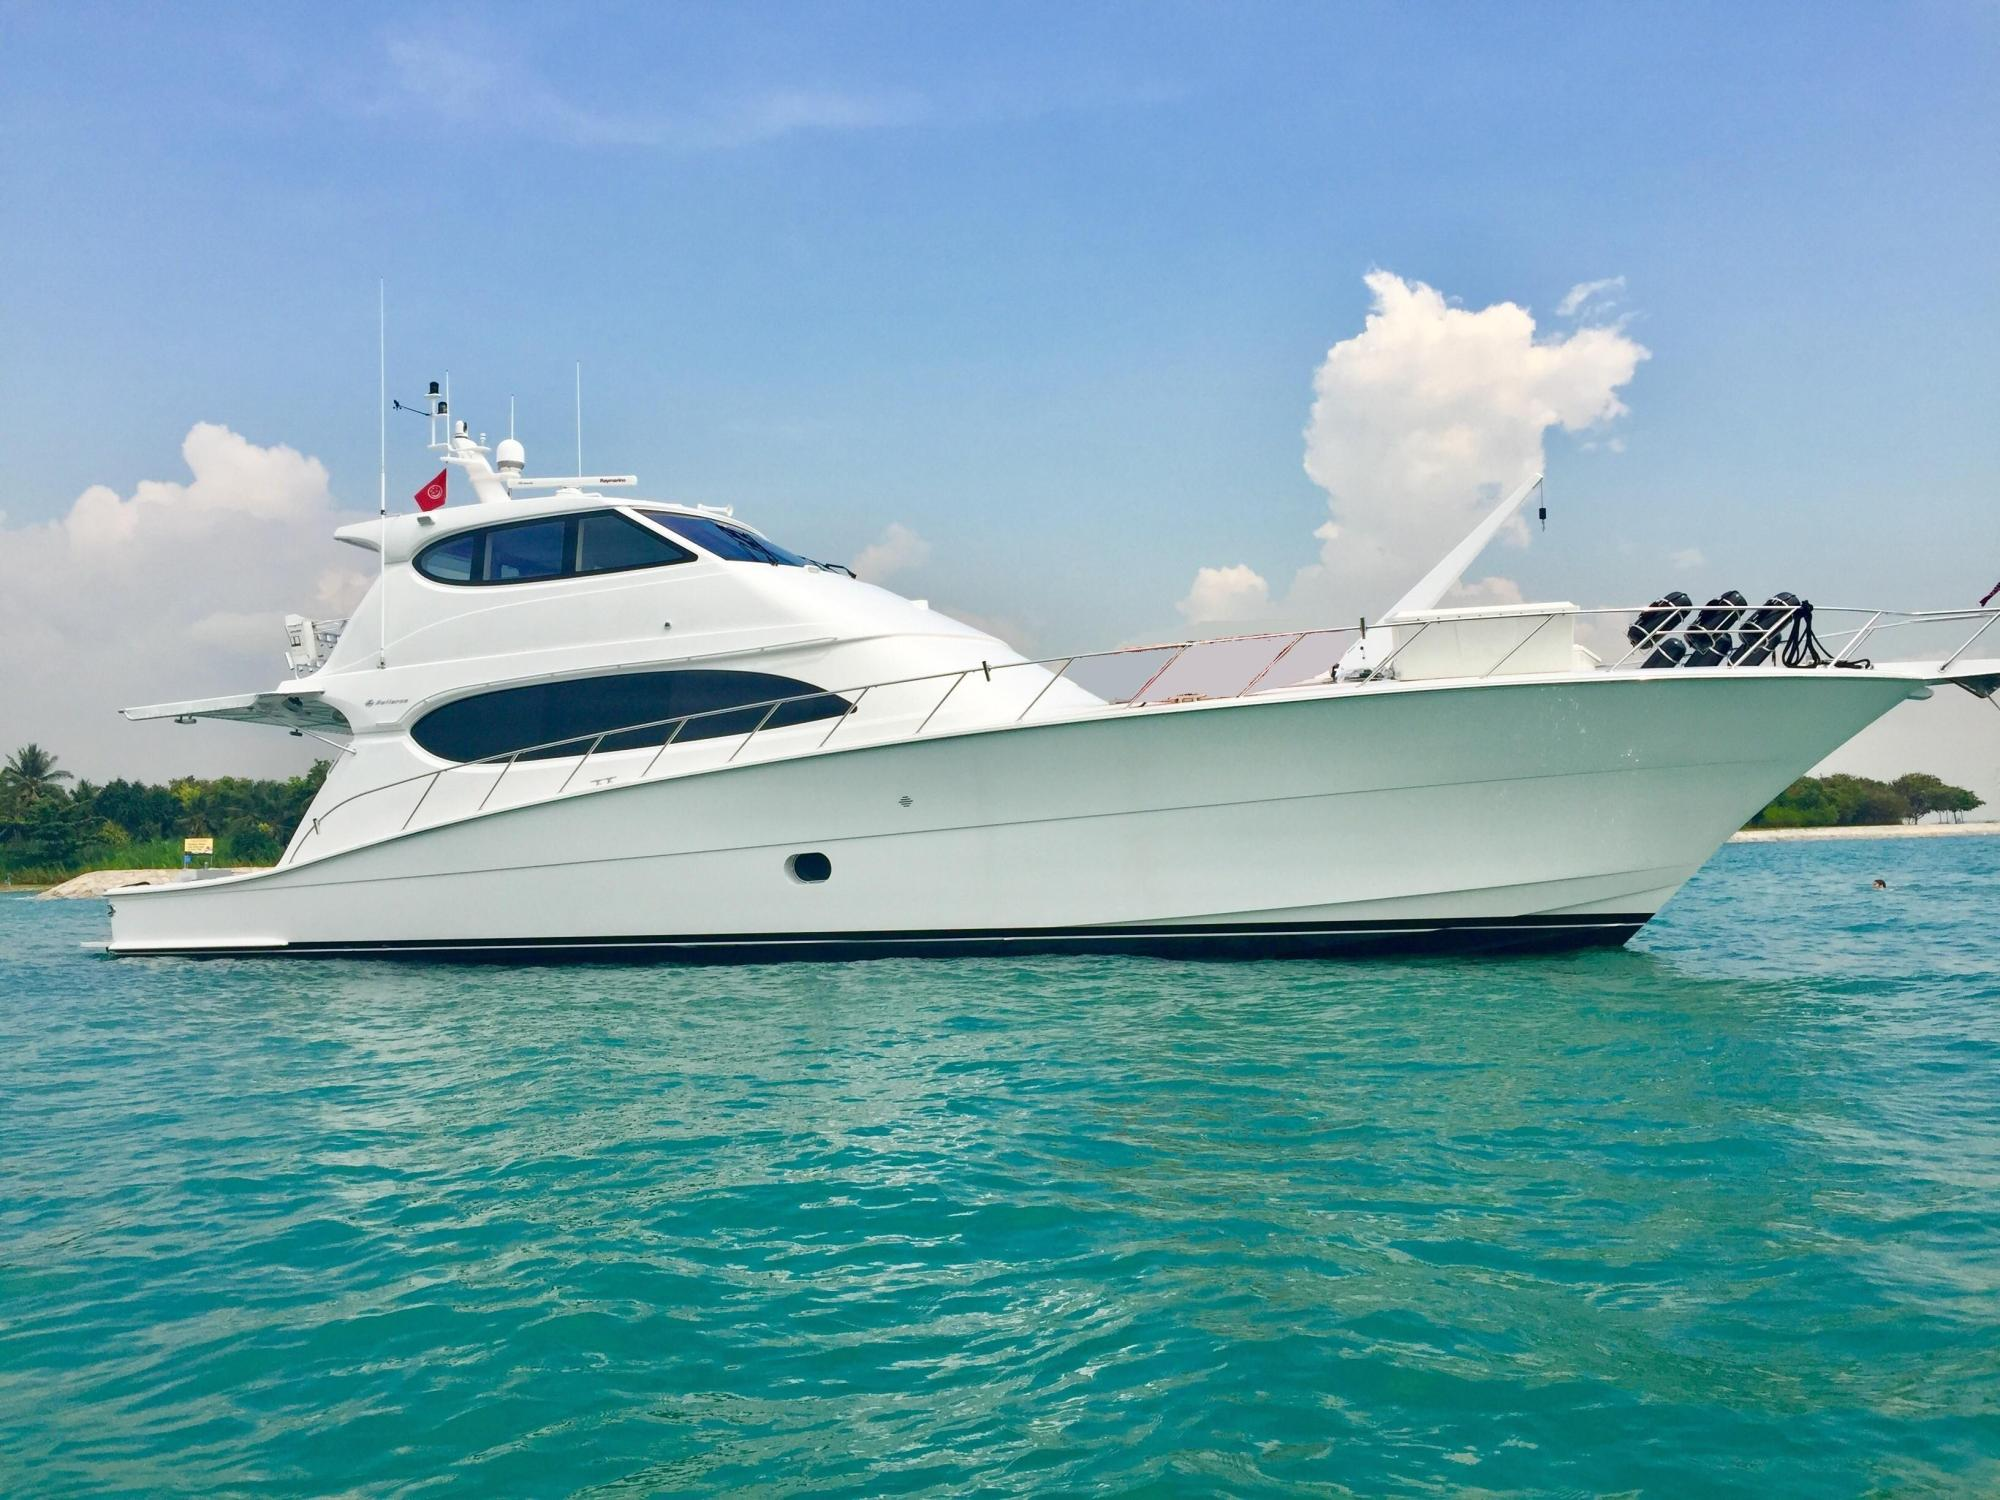 hight resolution of image of hatteras 77 convertible for sale in singapore for 3 500 000 2 786 181 singapore